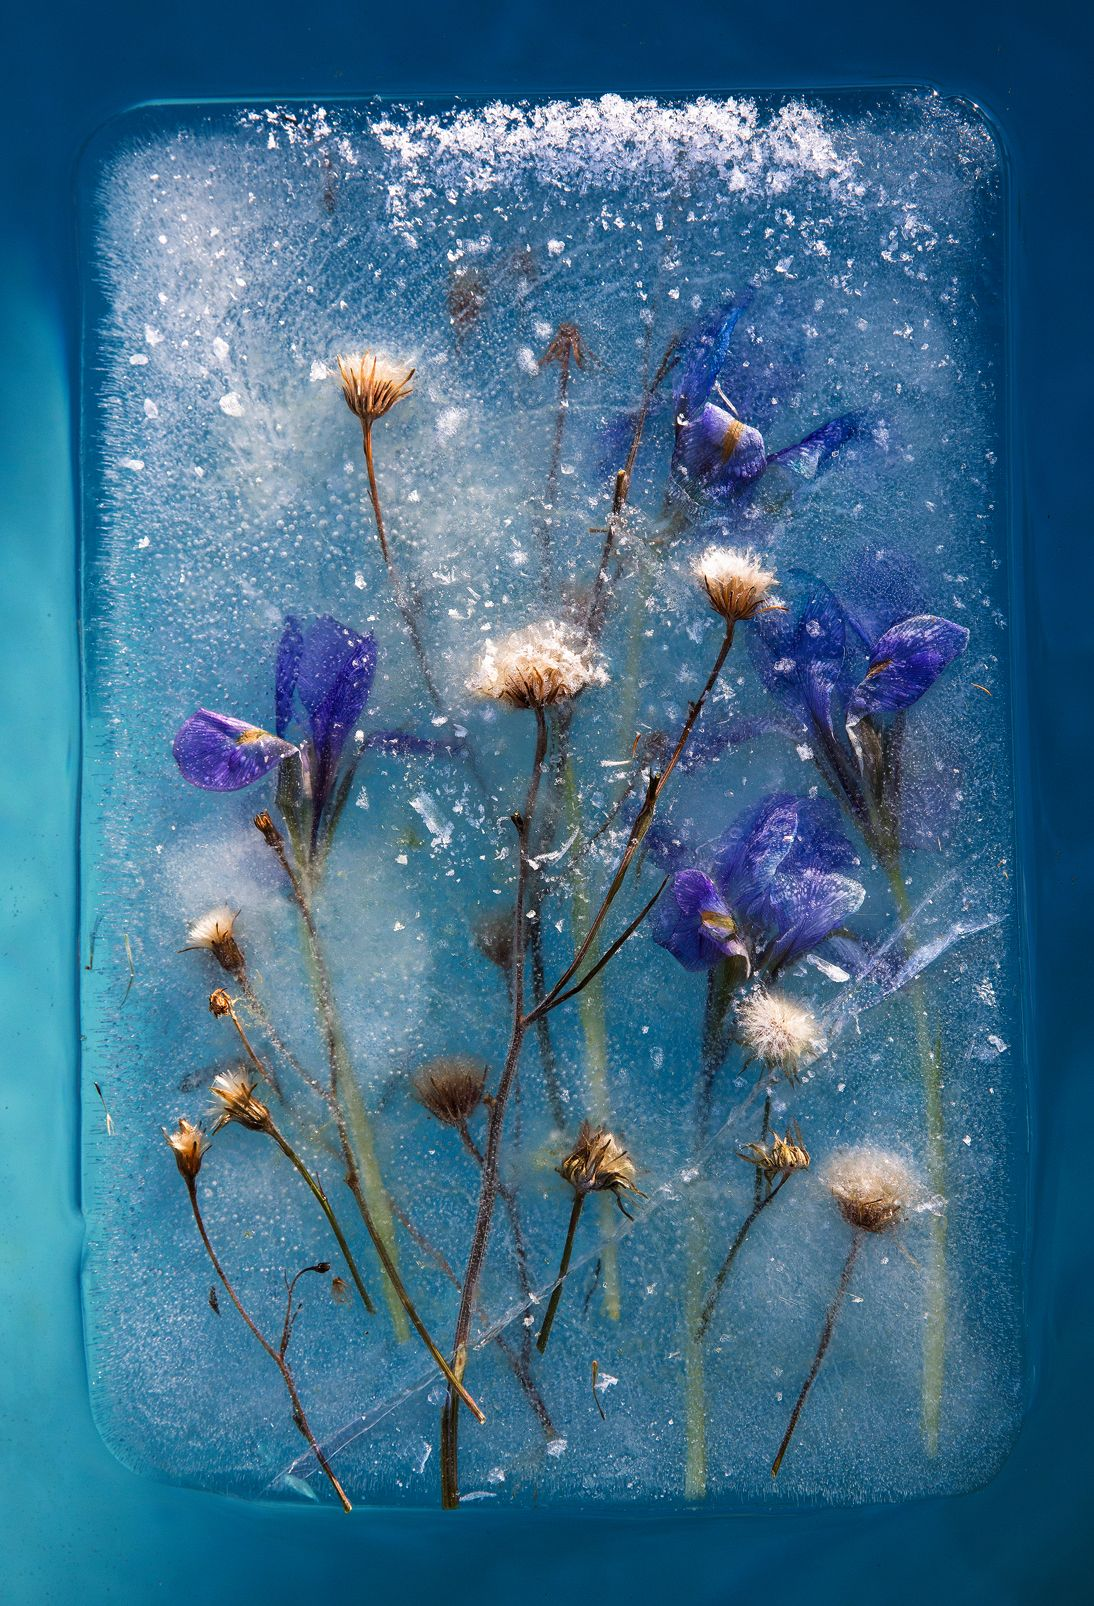 Romantic Photographs Of Frozen Flowers In Blocks Of Ice Capture The Fragility Of Nature Creative Boom